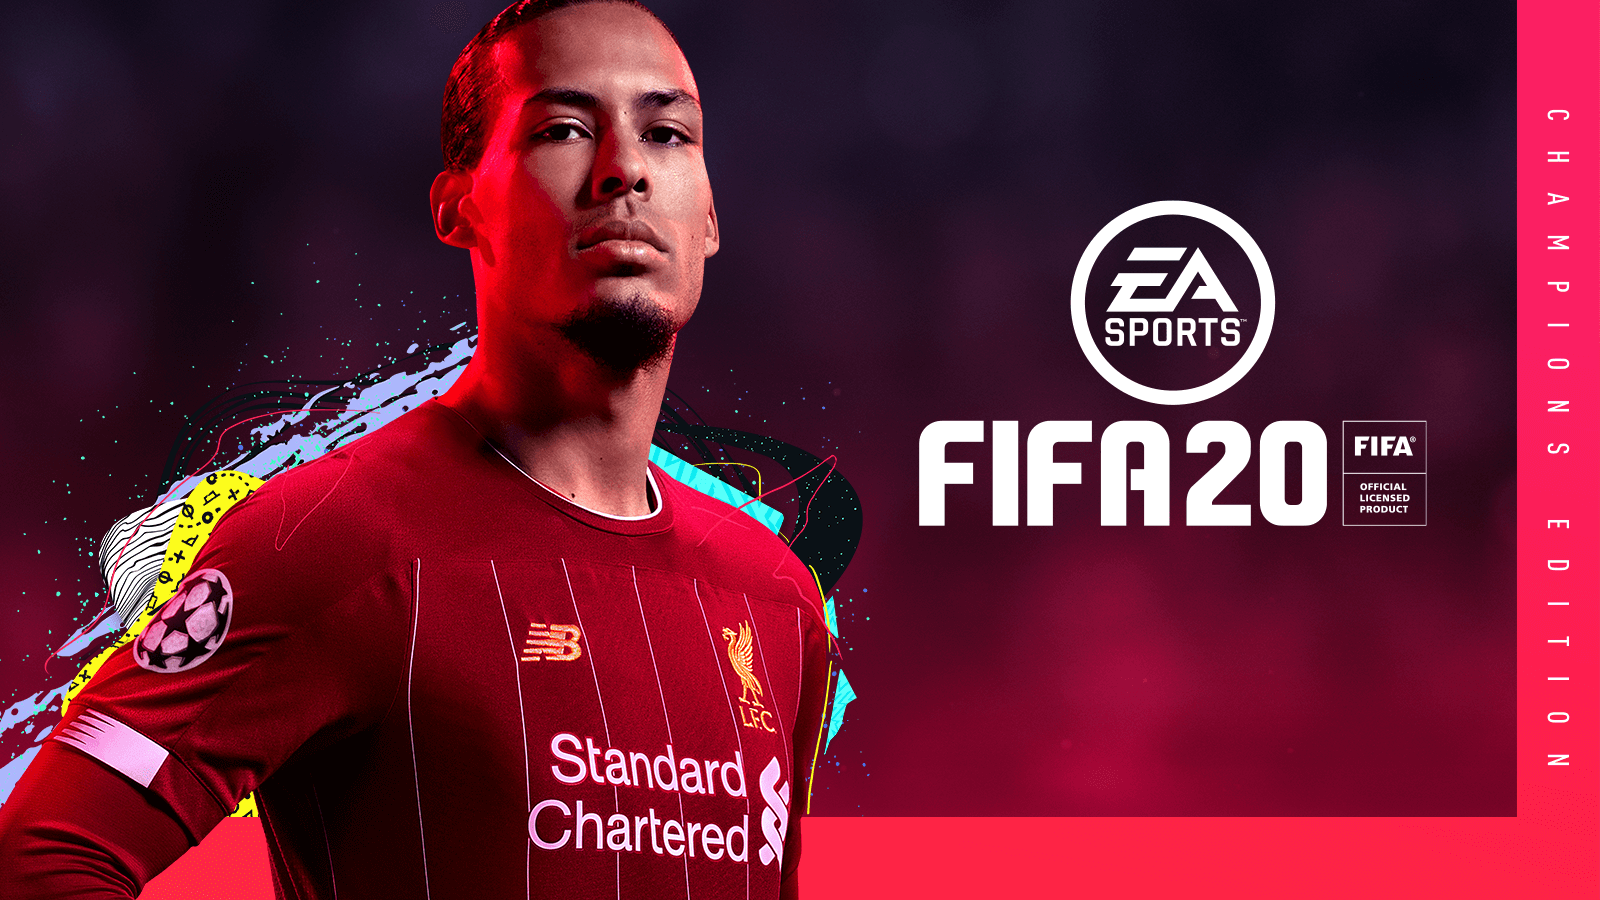 FIFA 20 Demo Is Out On PS4, Xbox And PC Only – Here Are The Teams, And Game Modes